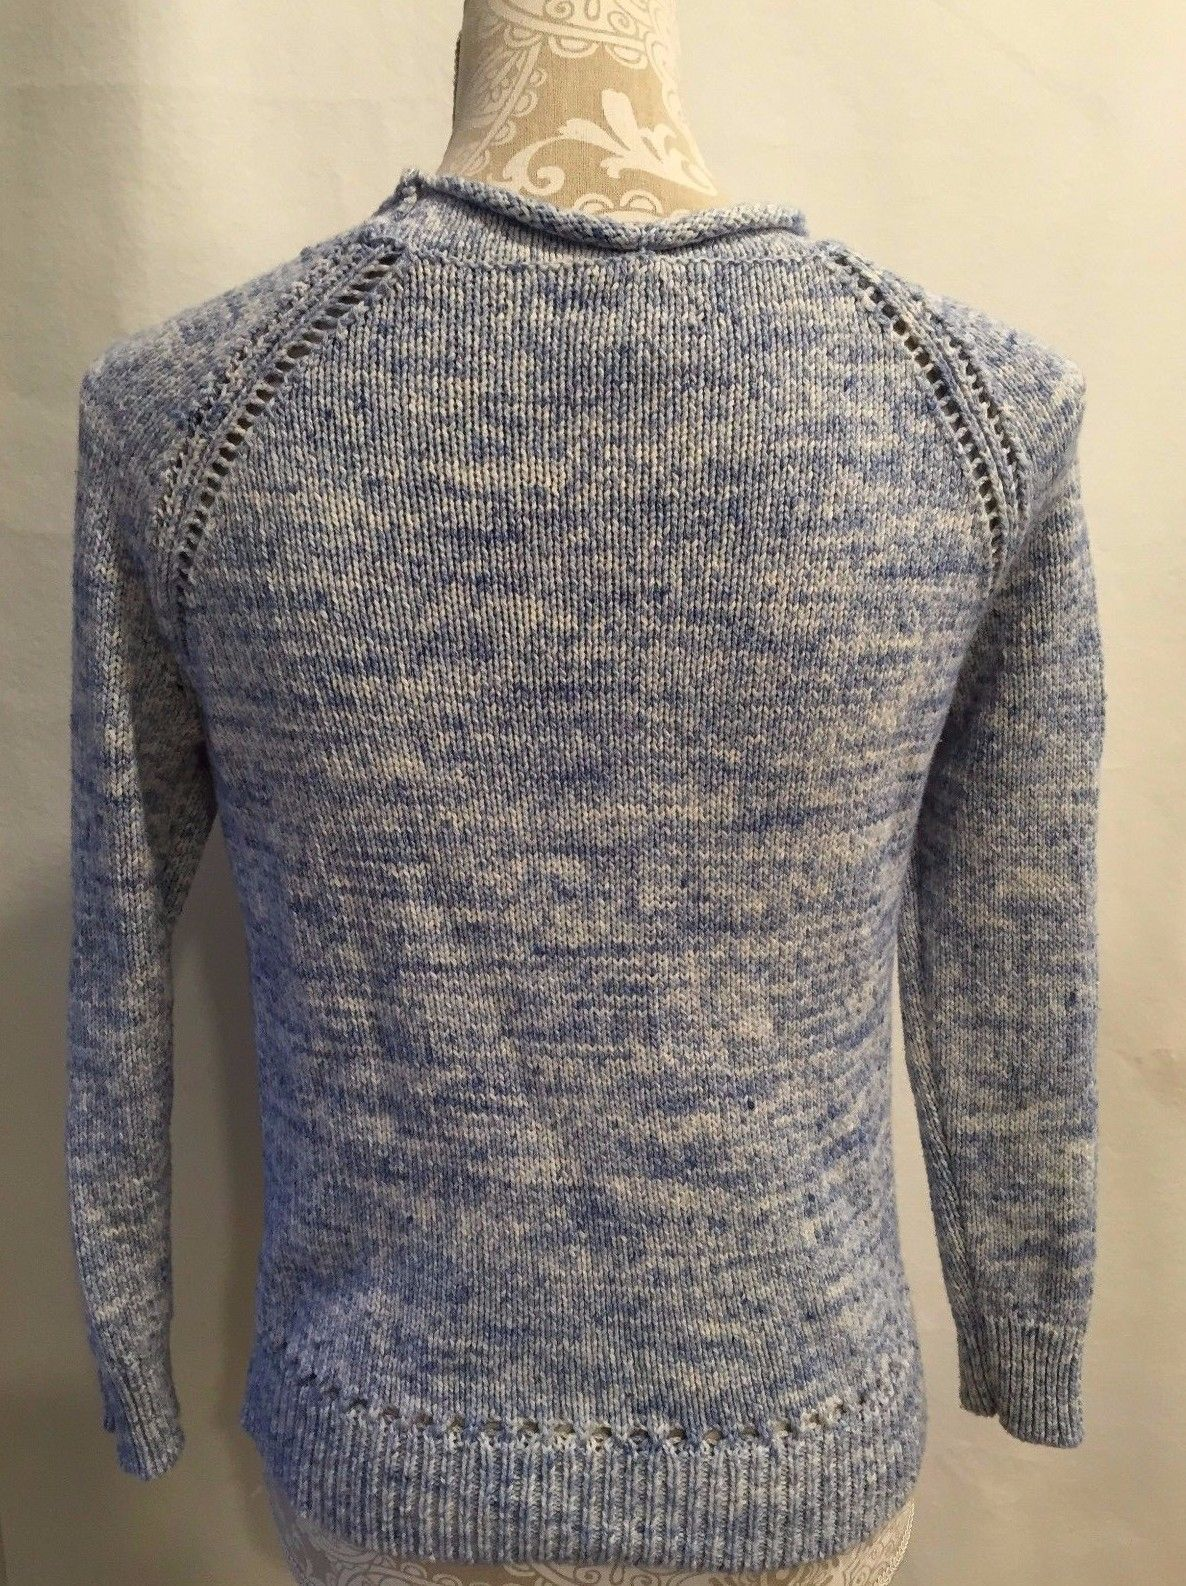 40273e2cd5 J.CREW WOMEN BEACH SWEATER WITH POINTELLE DETAILS PETITE SIZE S